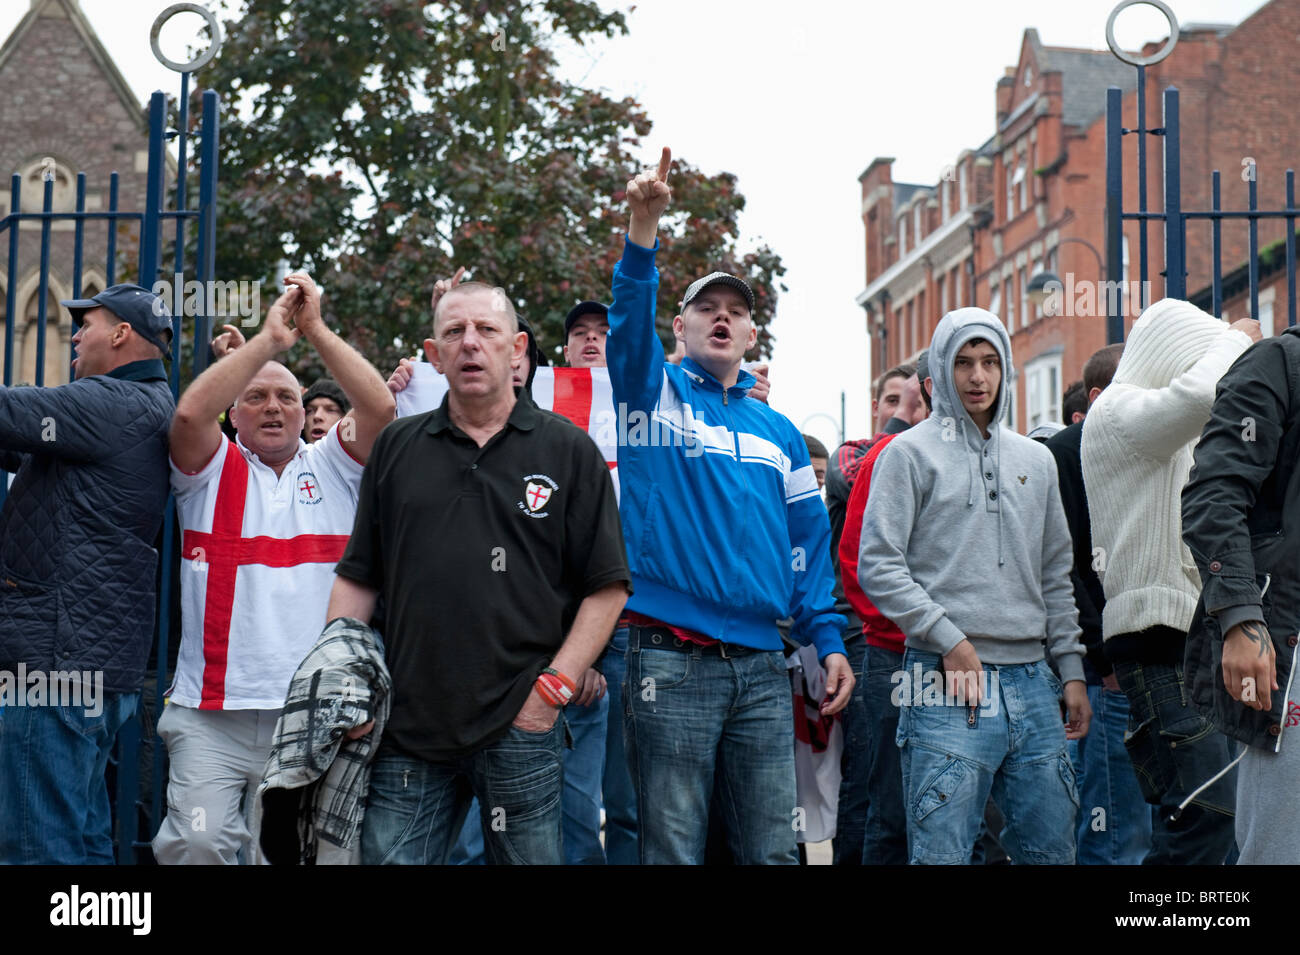 The English Defence League demonstrate in Leicester. 9th October 2010. - Stock Image